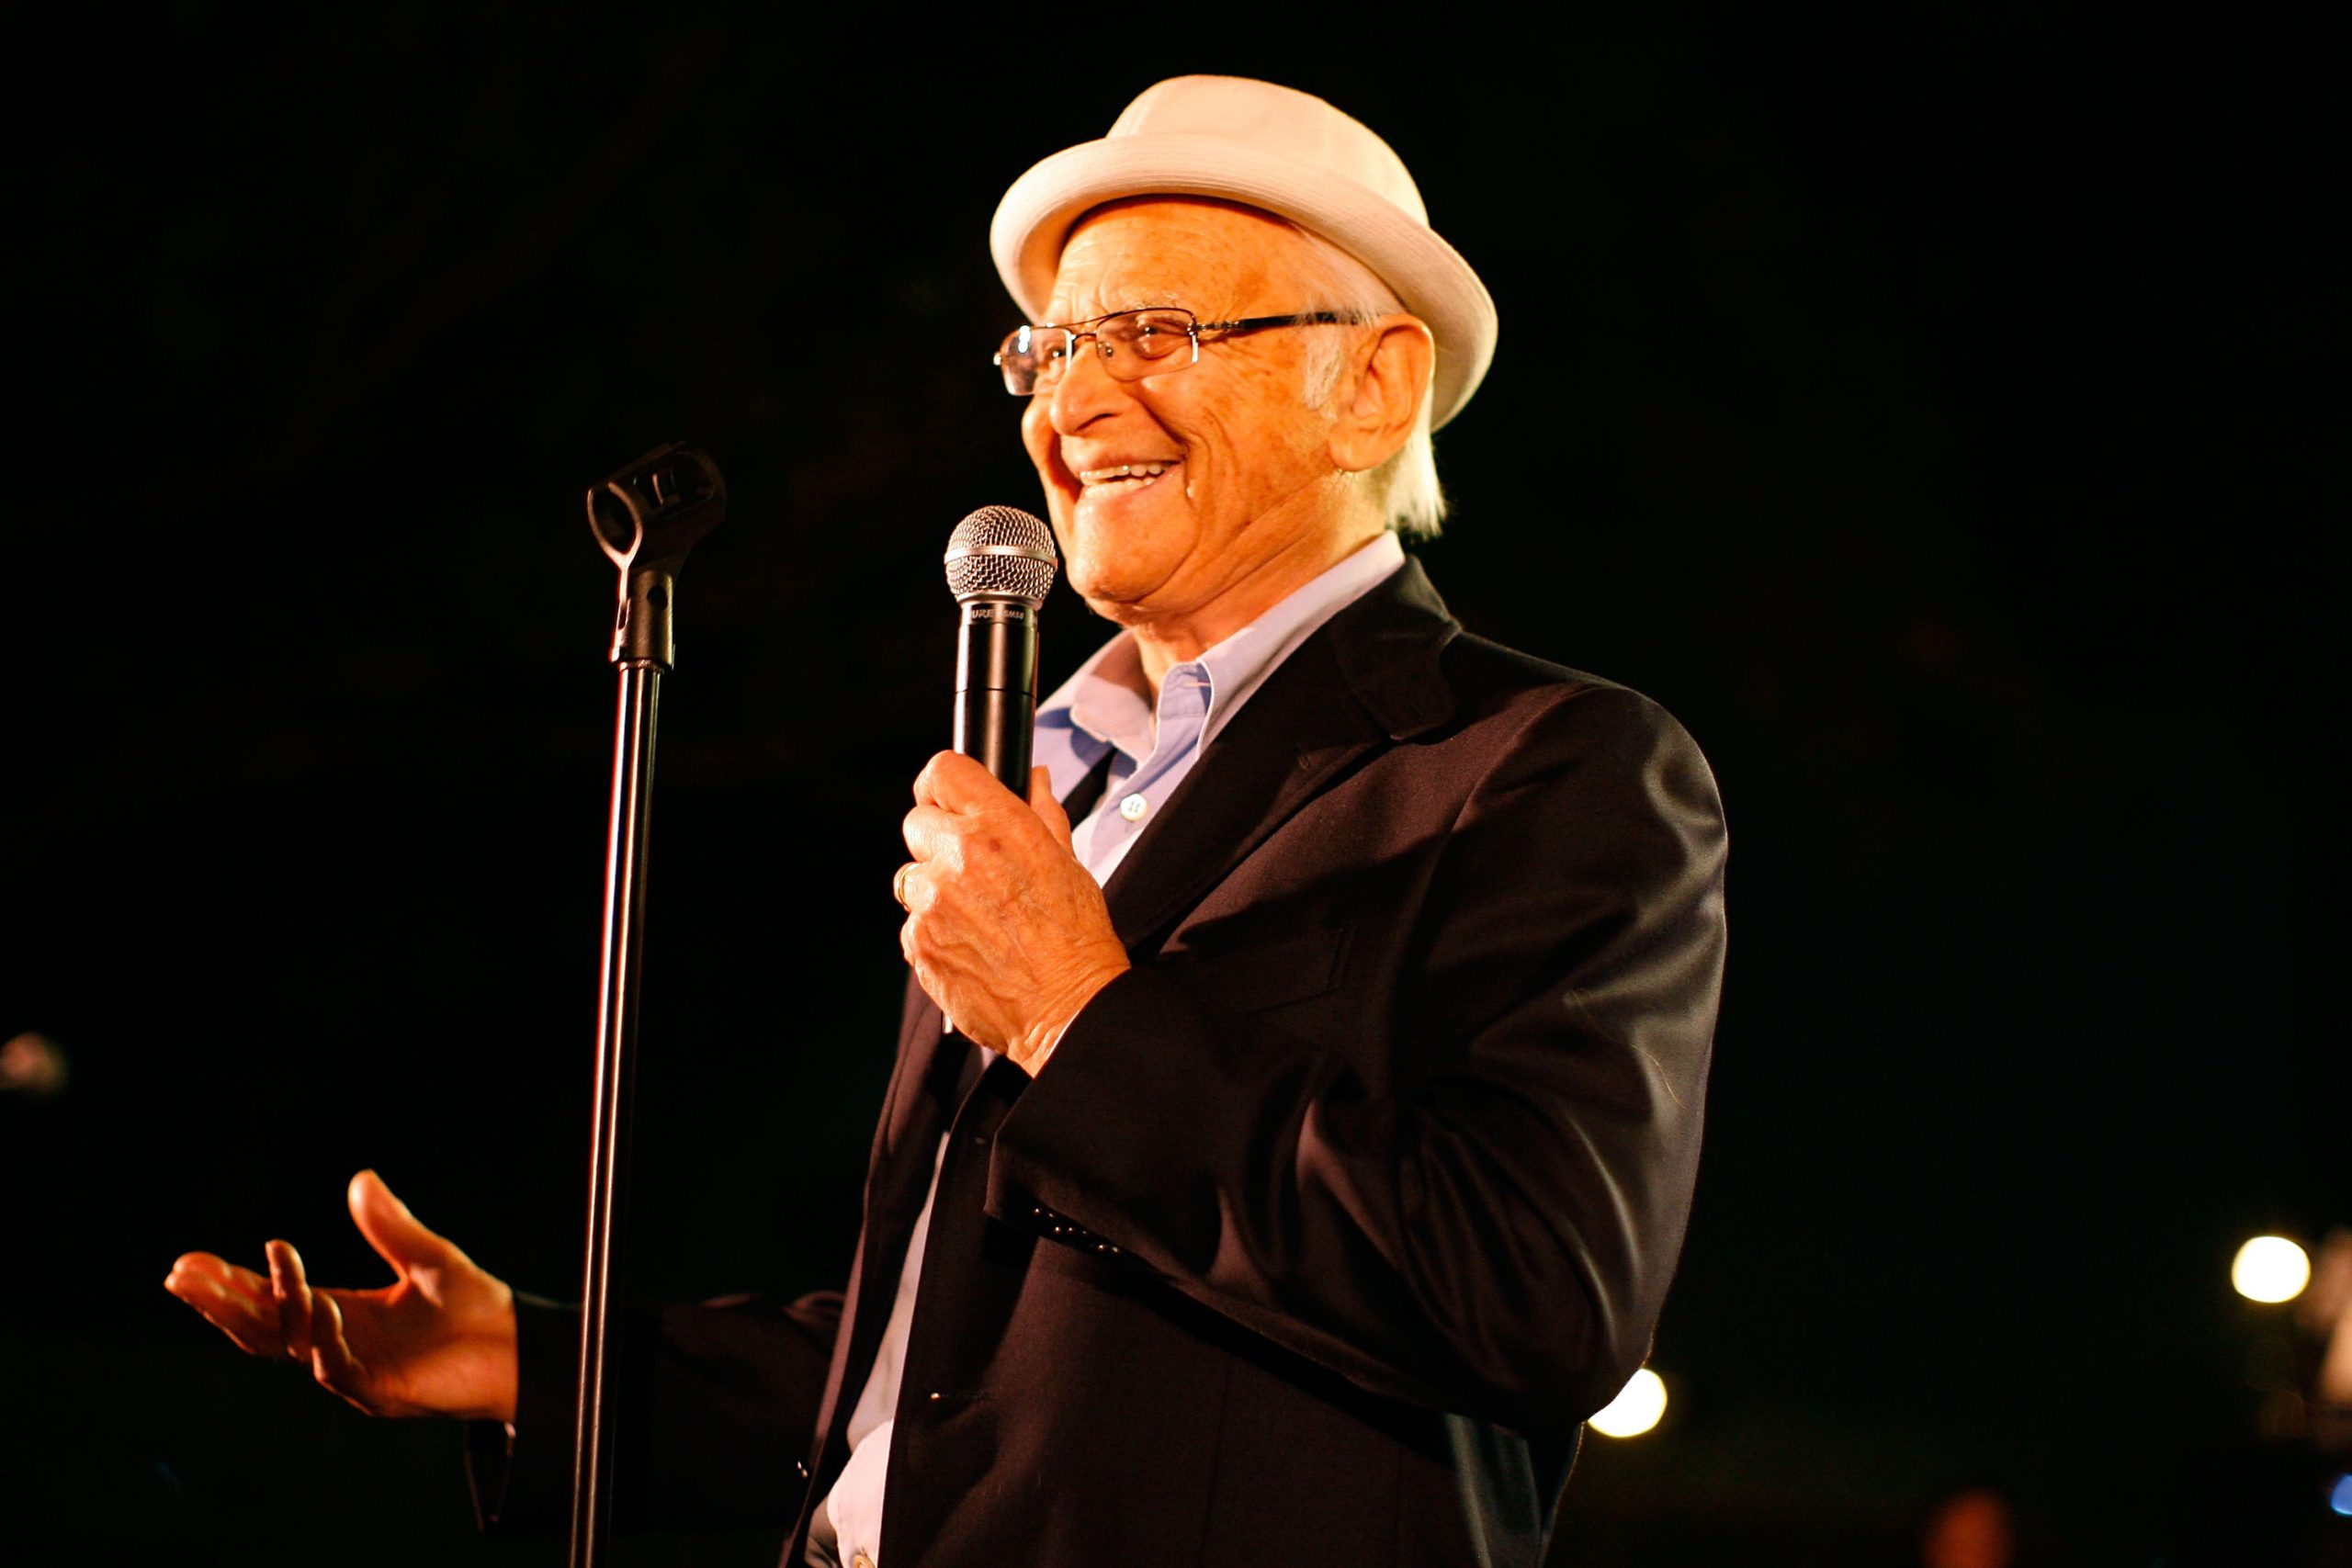 Television producer Norman Lear